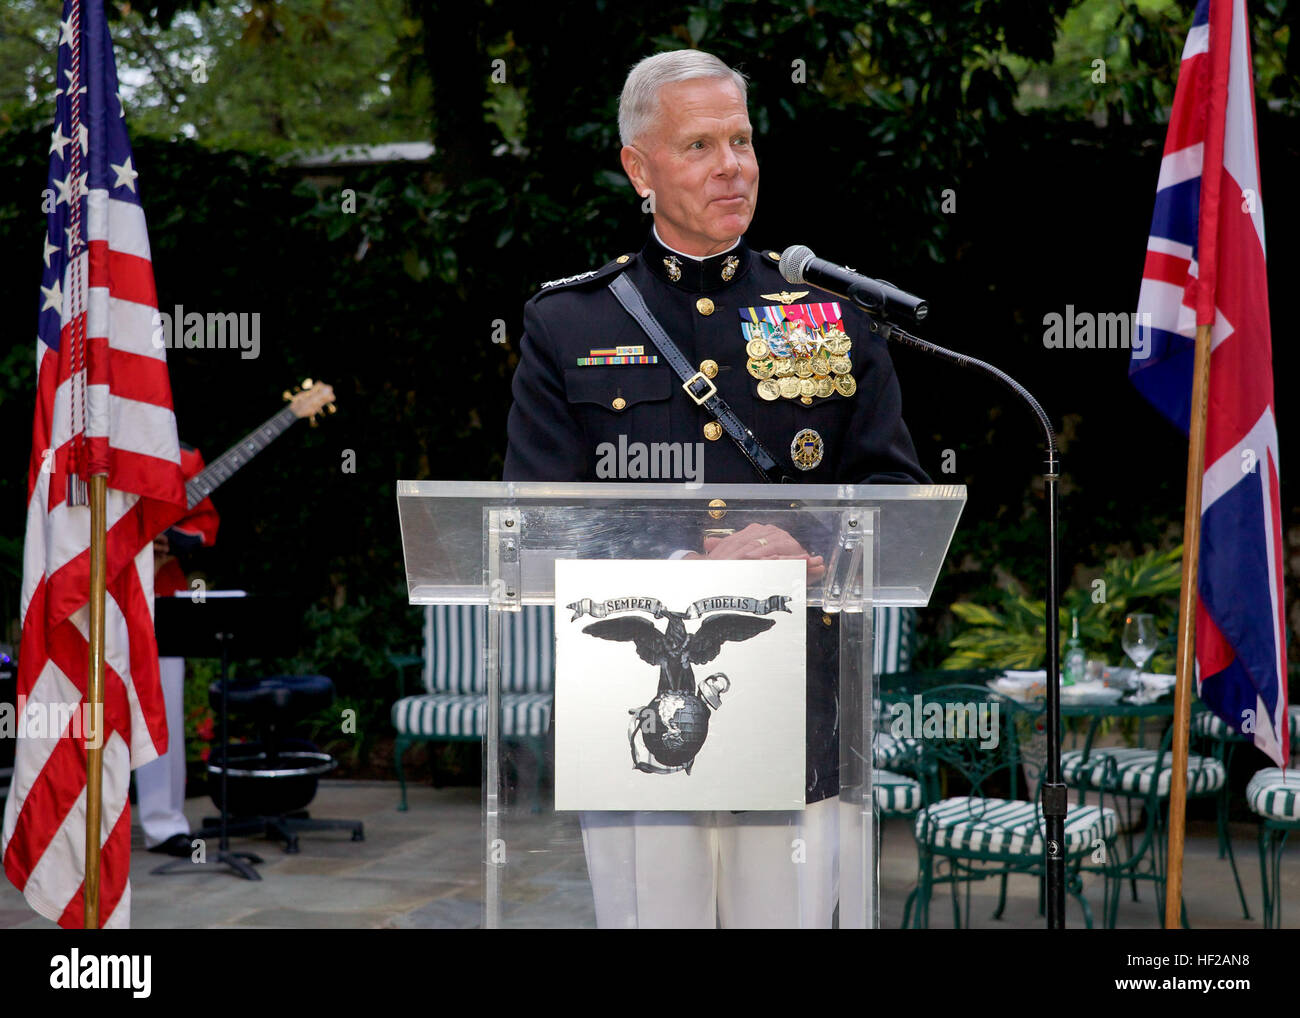 The Commandant of the U.S. Marine Corps, Gen. James F. Amos, gives an address during an Evening Parade reception Stock Photo